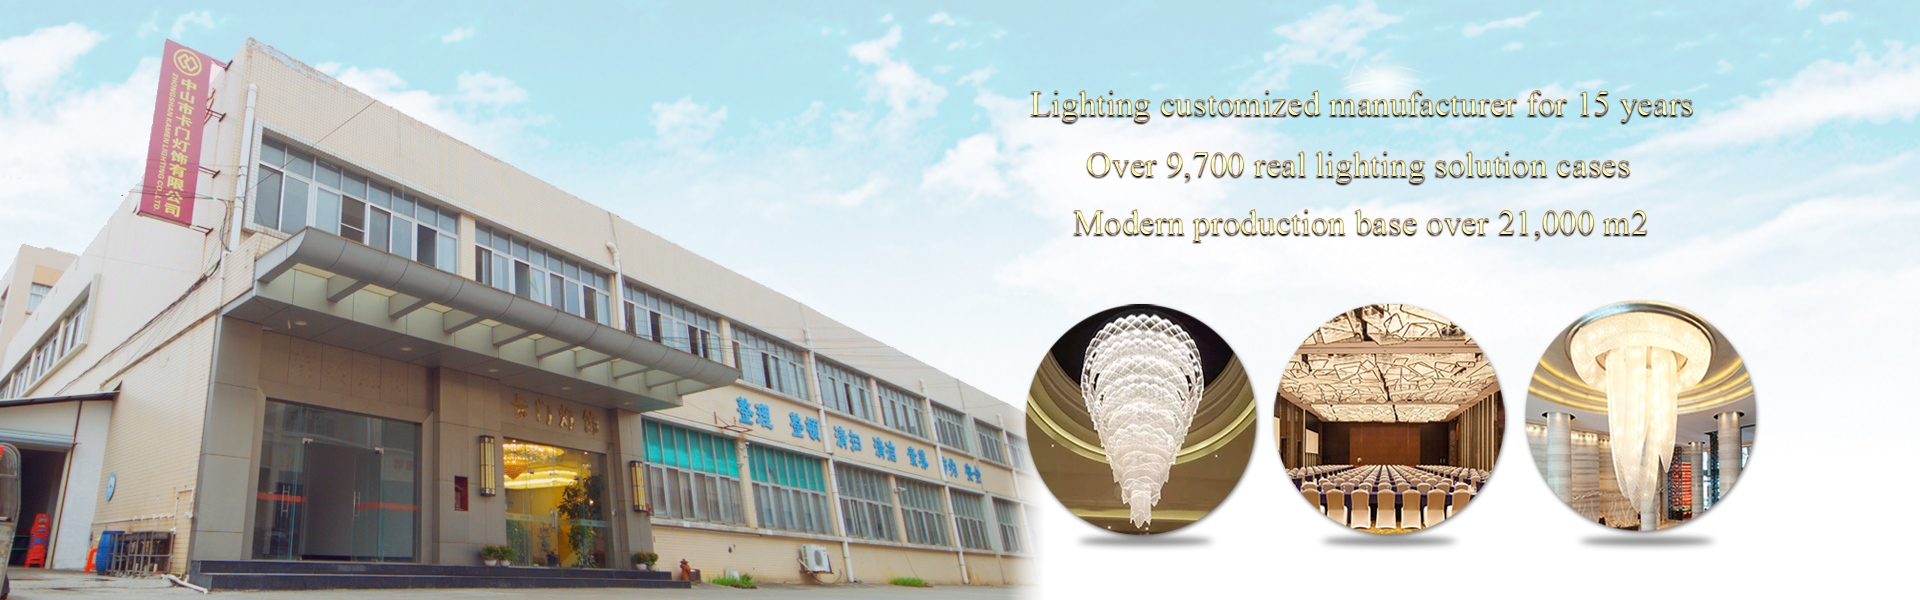 zhongshan kamen lighting Co.,Ltd.